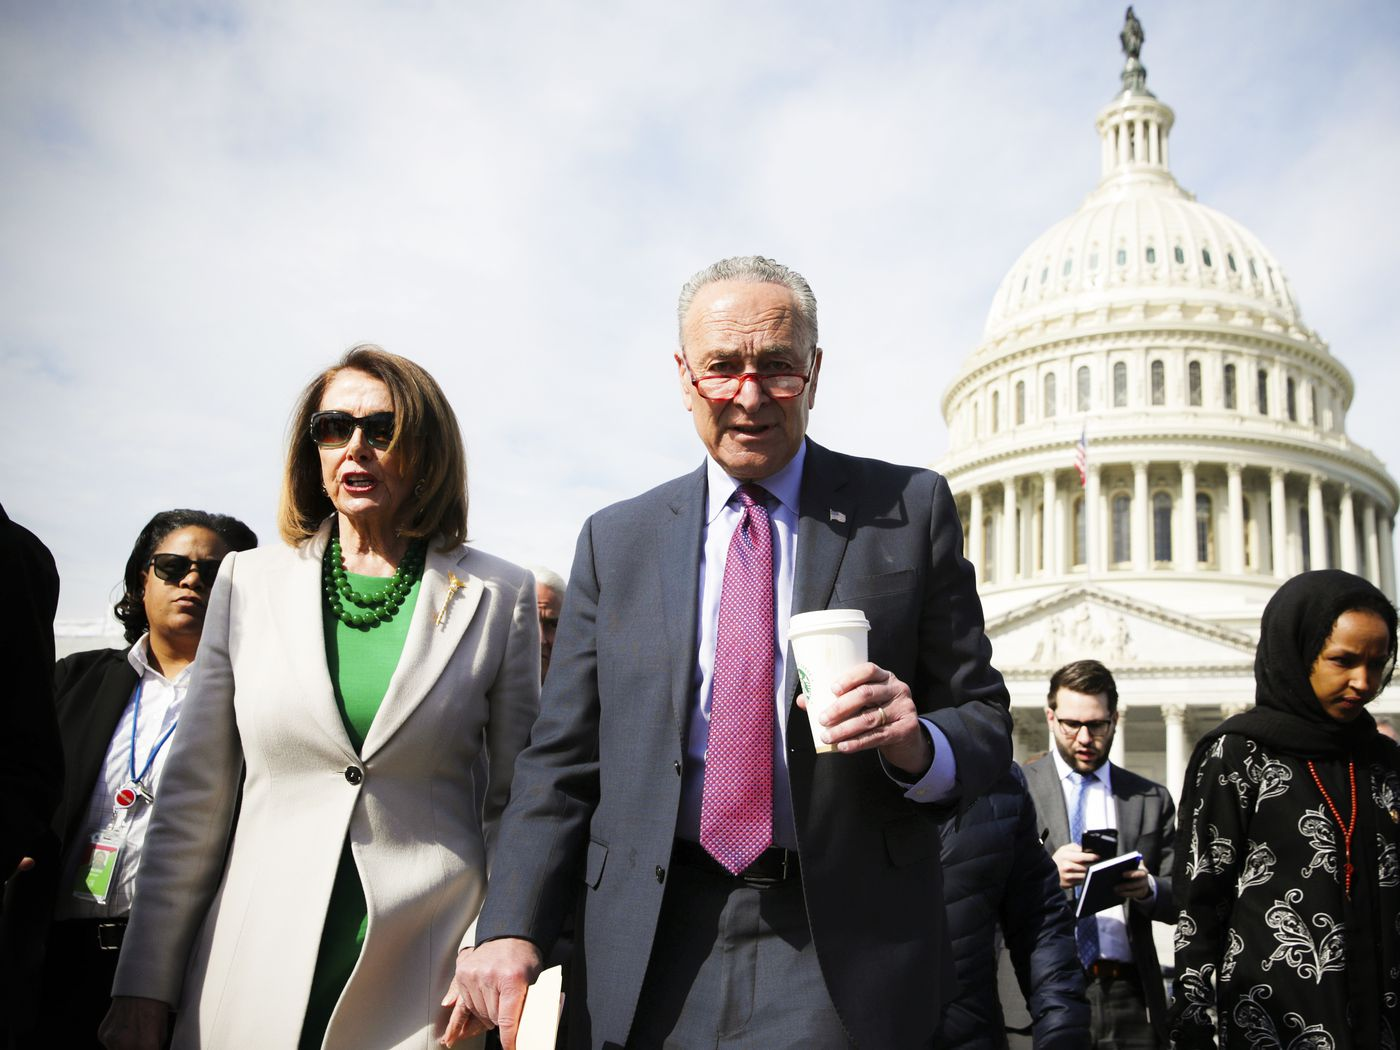 List Of Senators Up For Reelection In 2020.2020 Elections Democrats Are Trying To Take Back The Senate